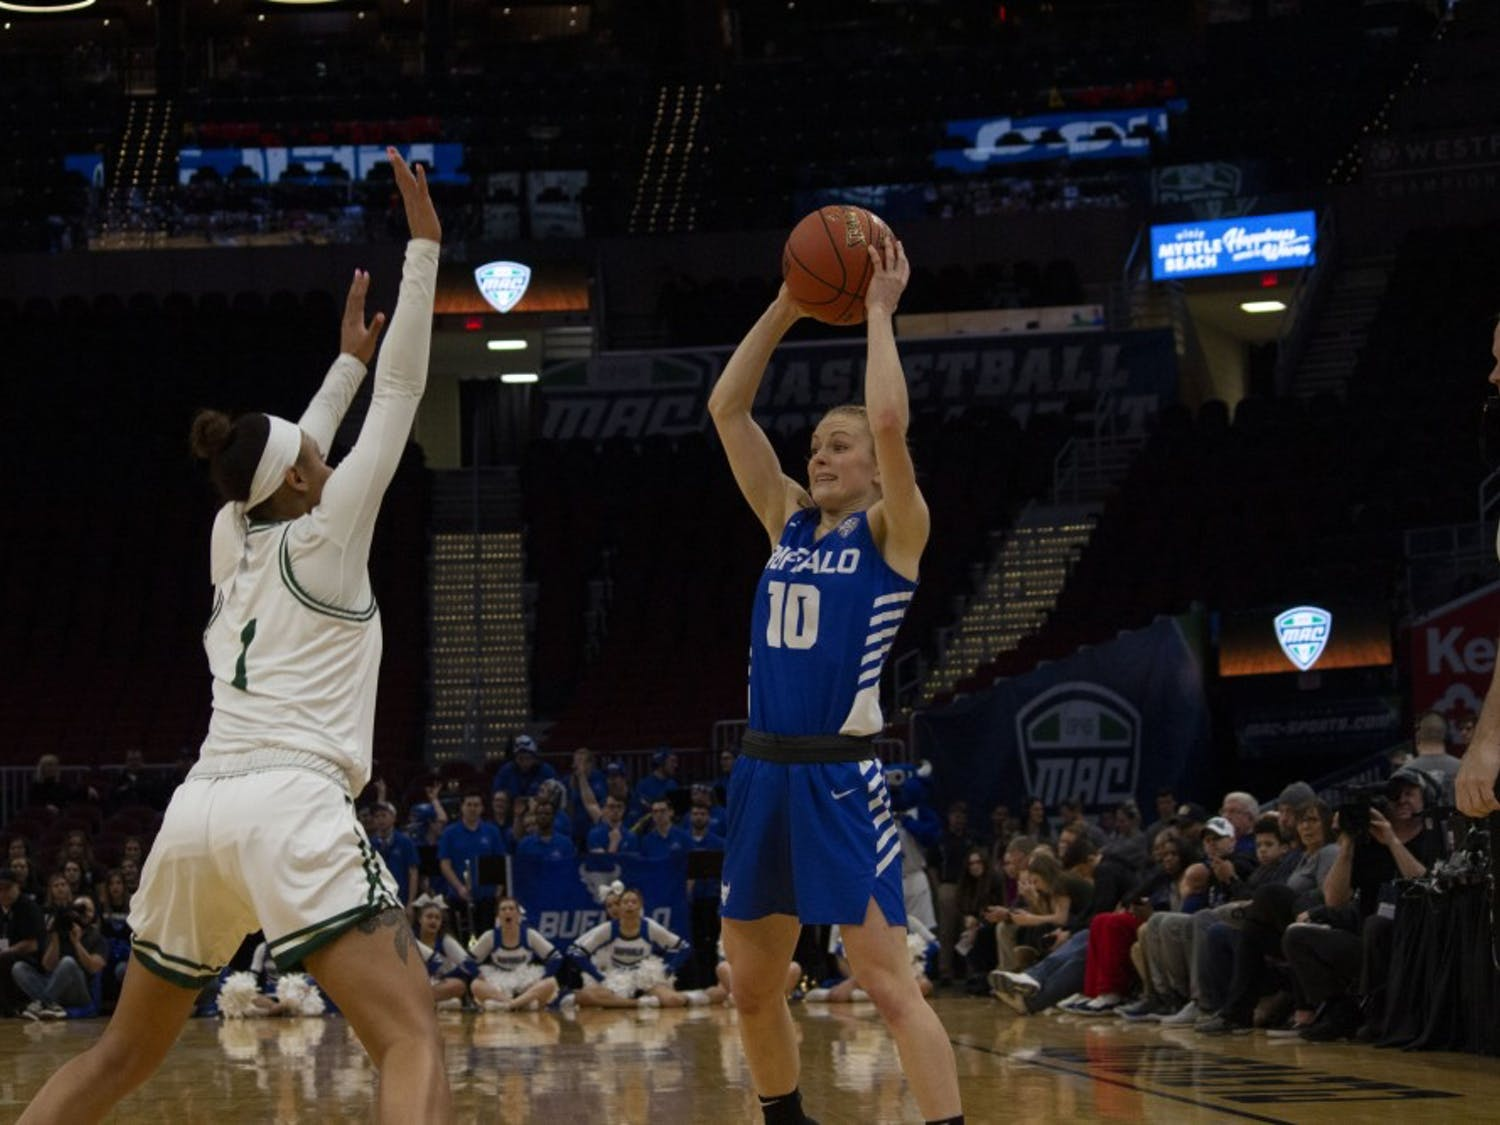 The UB women's basketball team became 2019 MAC champions Saturday in Cleveland. The Bulls beat Ohio 77-61.